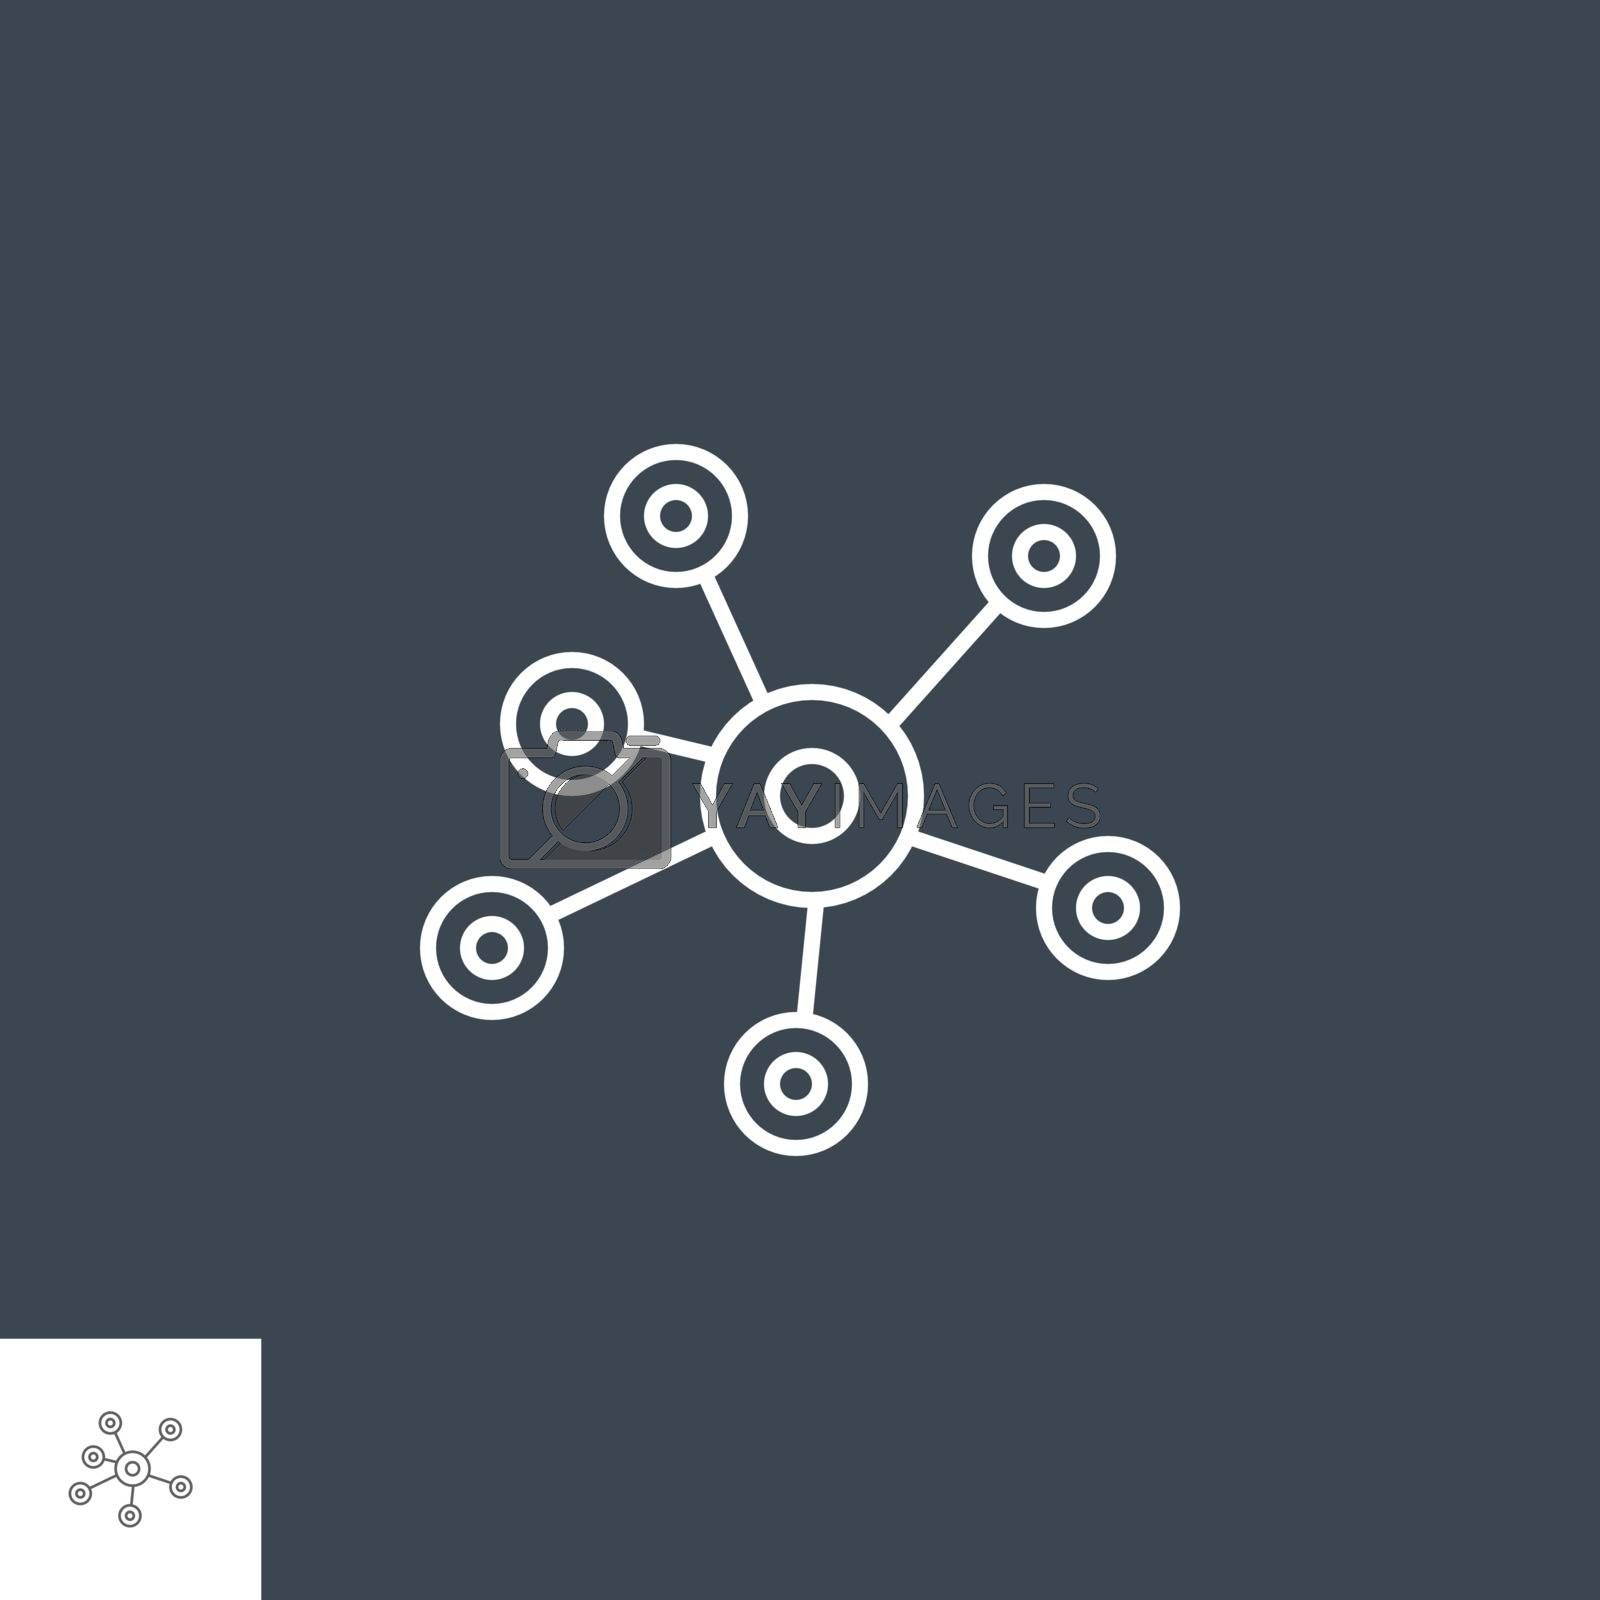 Social Media Related Vector Thin Line Icon. Isolated on Black Background. Editable Stroke. Vector Illustration.